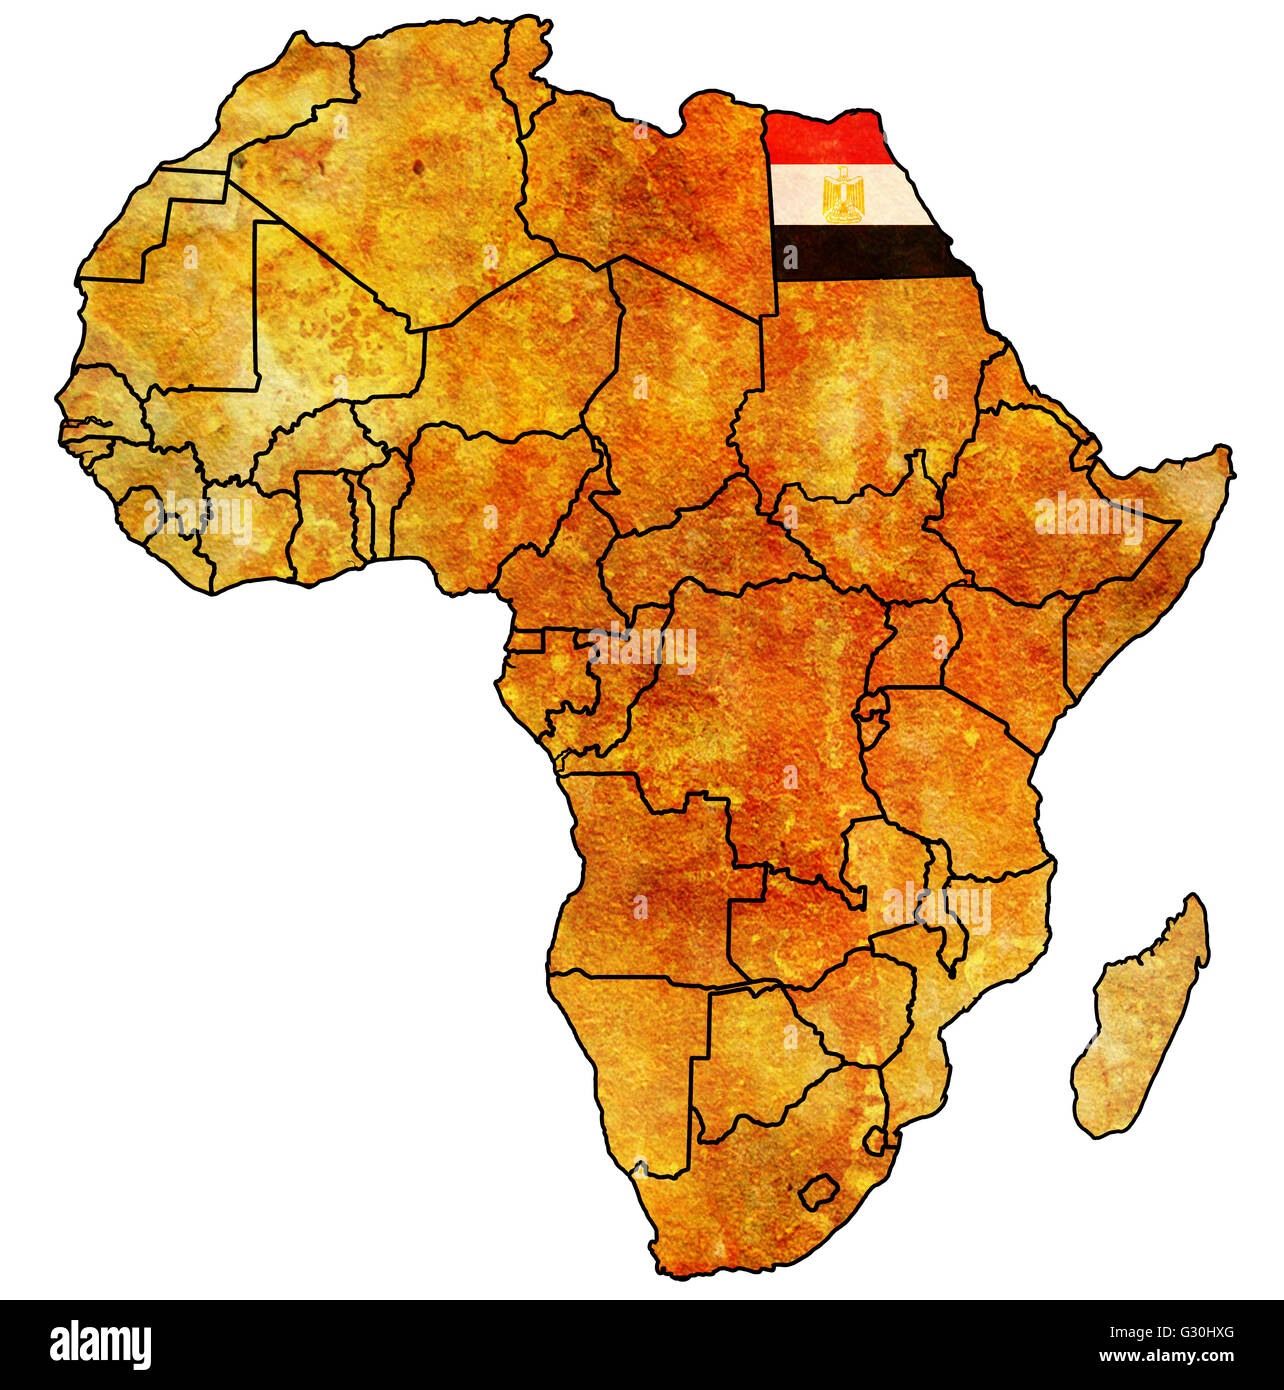 Egypt On Actual Vintage Political Map Of Africa With Flags